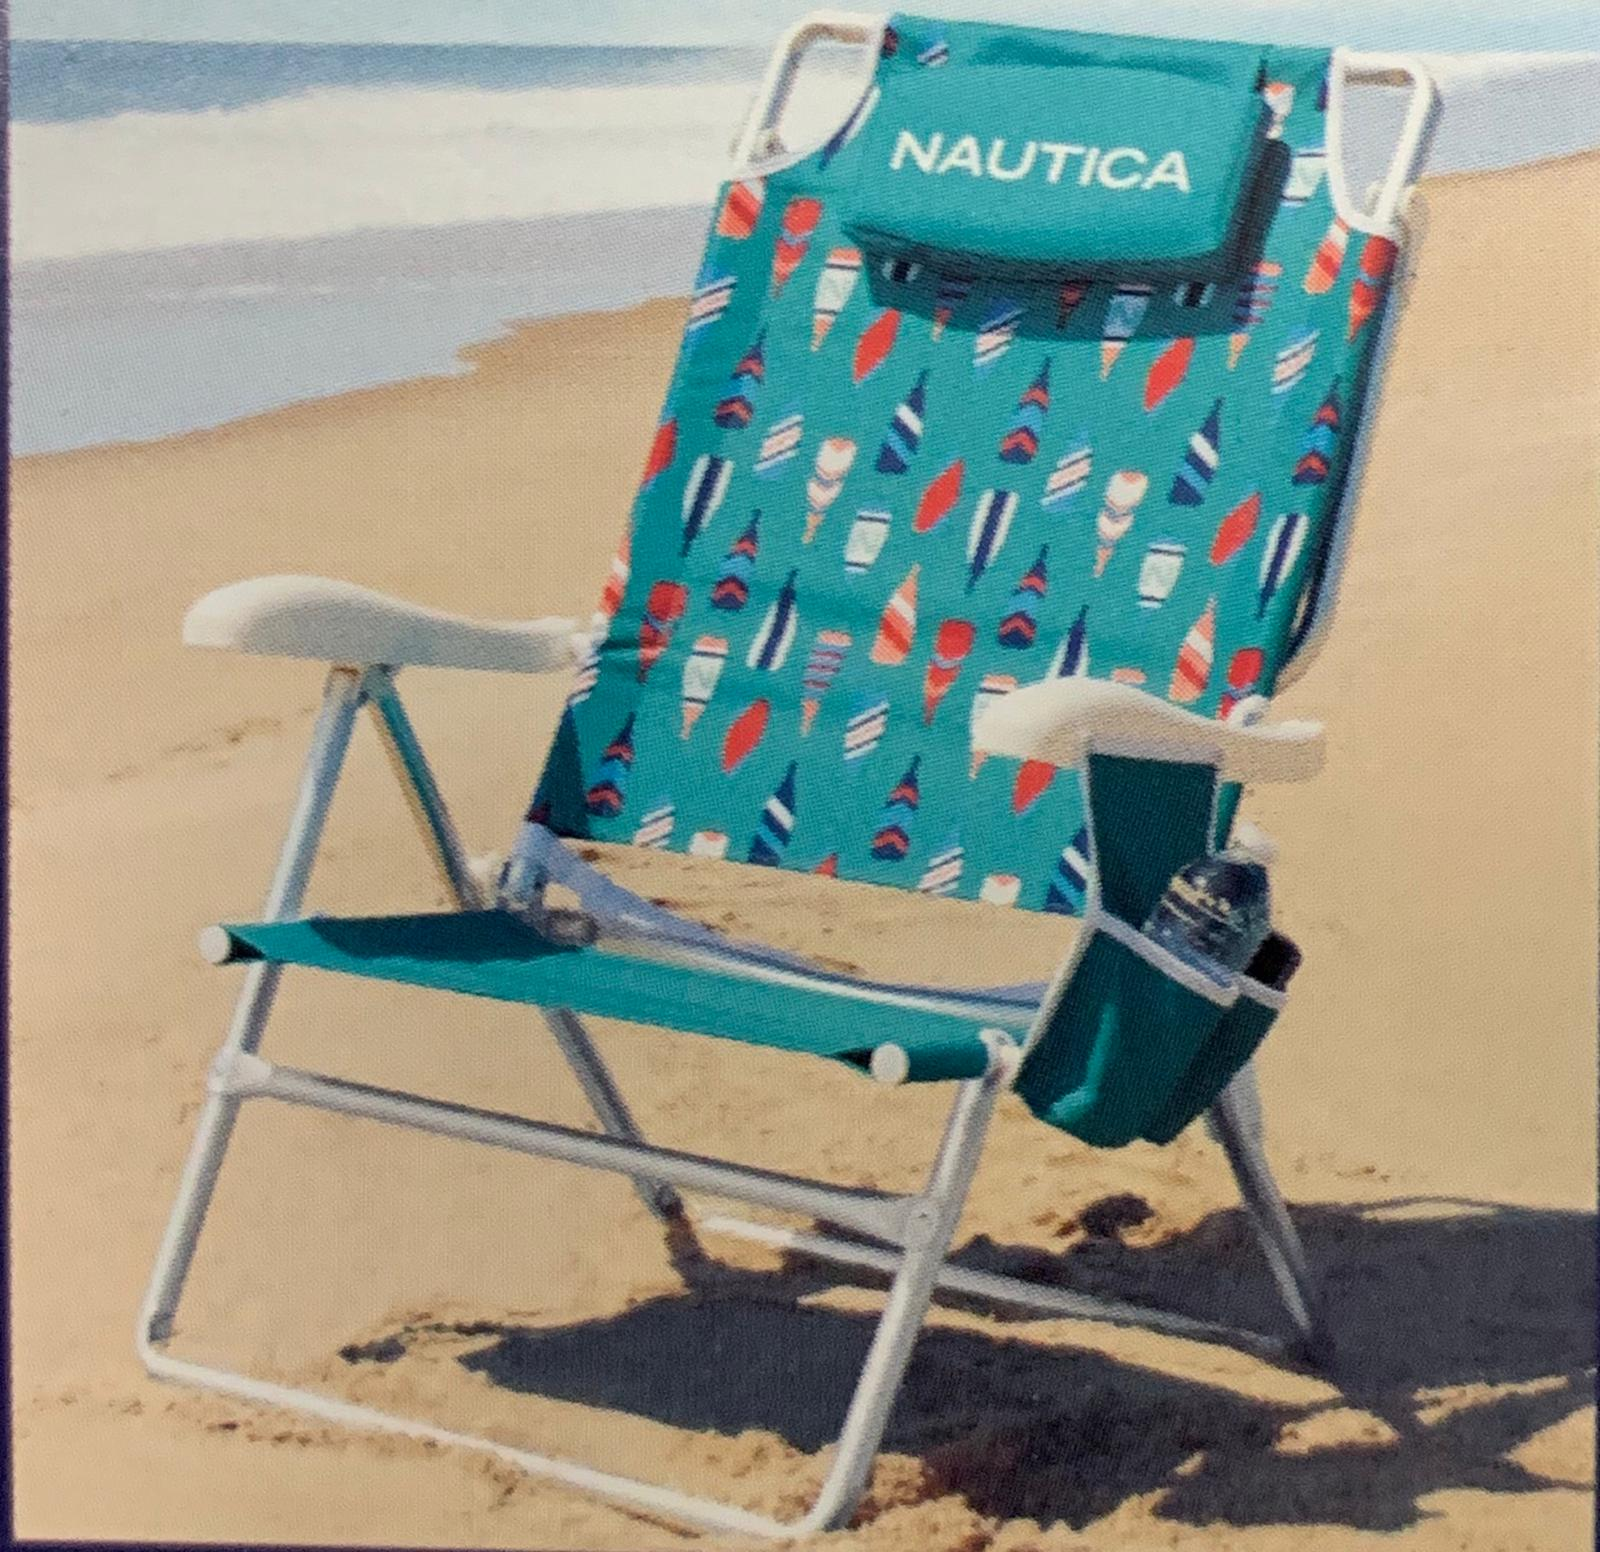 Nautica Jumbo Beach Chair 7 Position With Large Insulated Cooler And Double Cup Holder Up To 300 Pounds